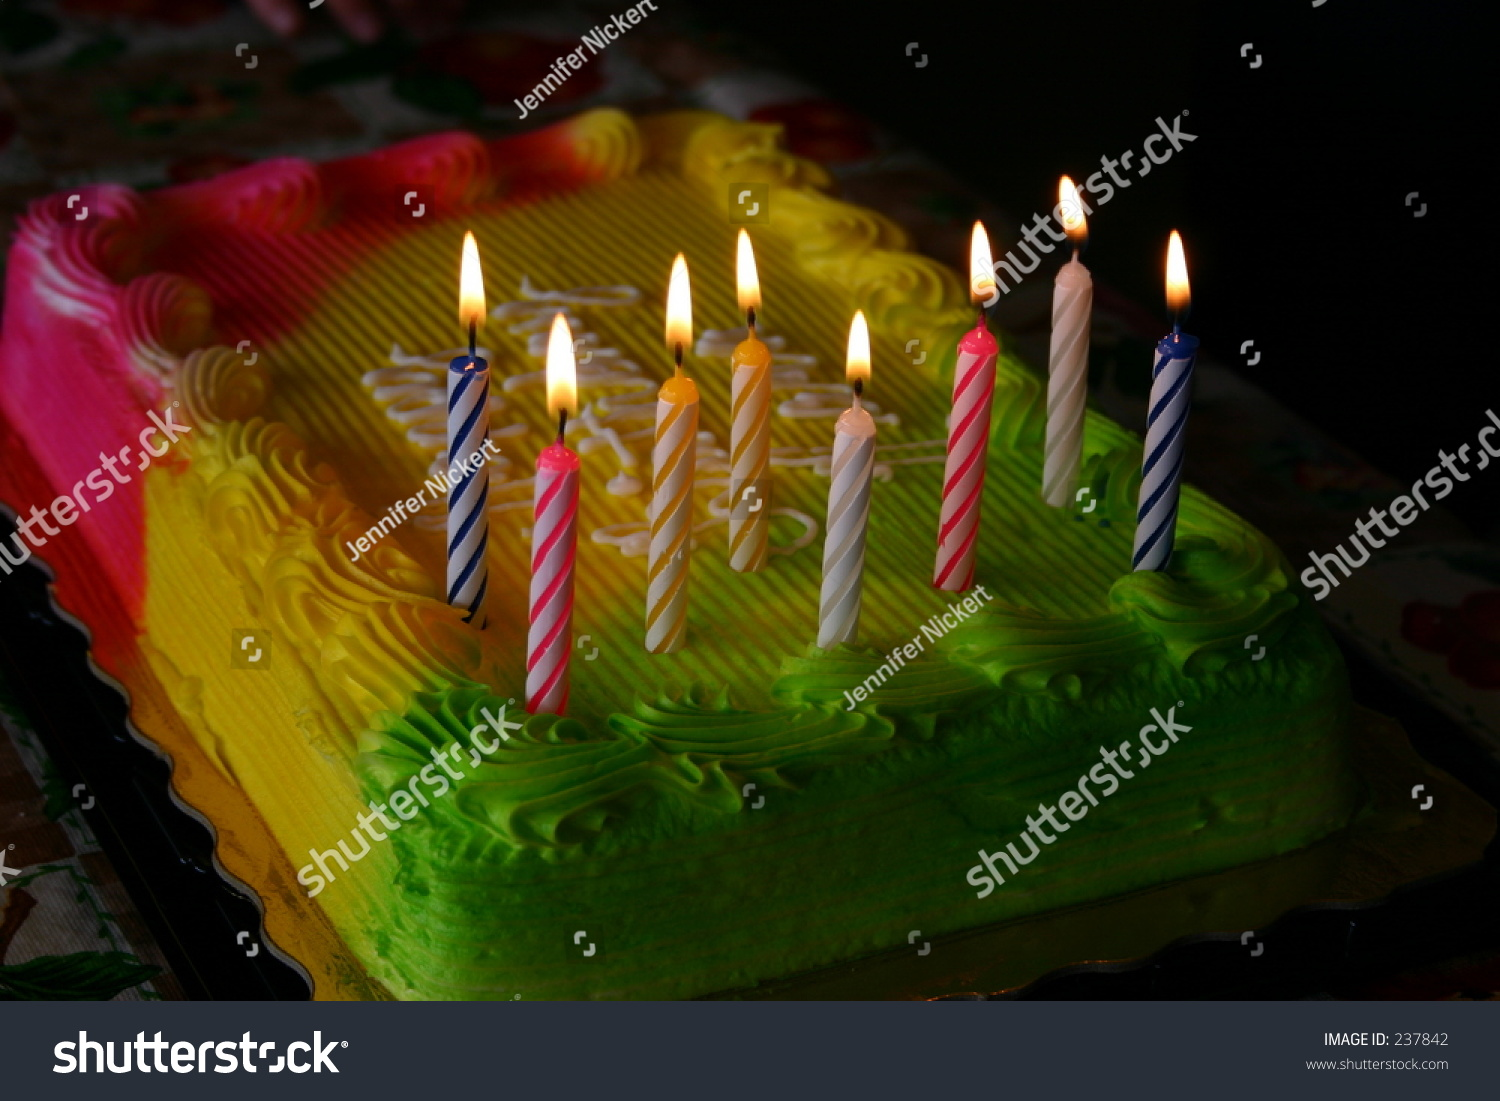 Pleasing Bright Neon Birthday Cake Candles Stock Photo Edit Now 237842 Funny Birthday Cards Online Alyptdamsfinfo